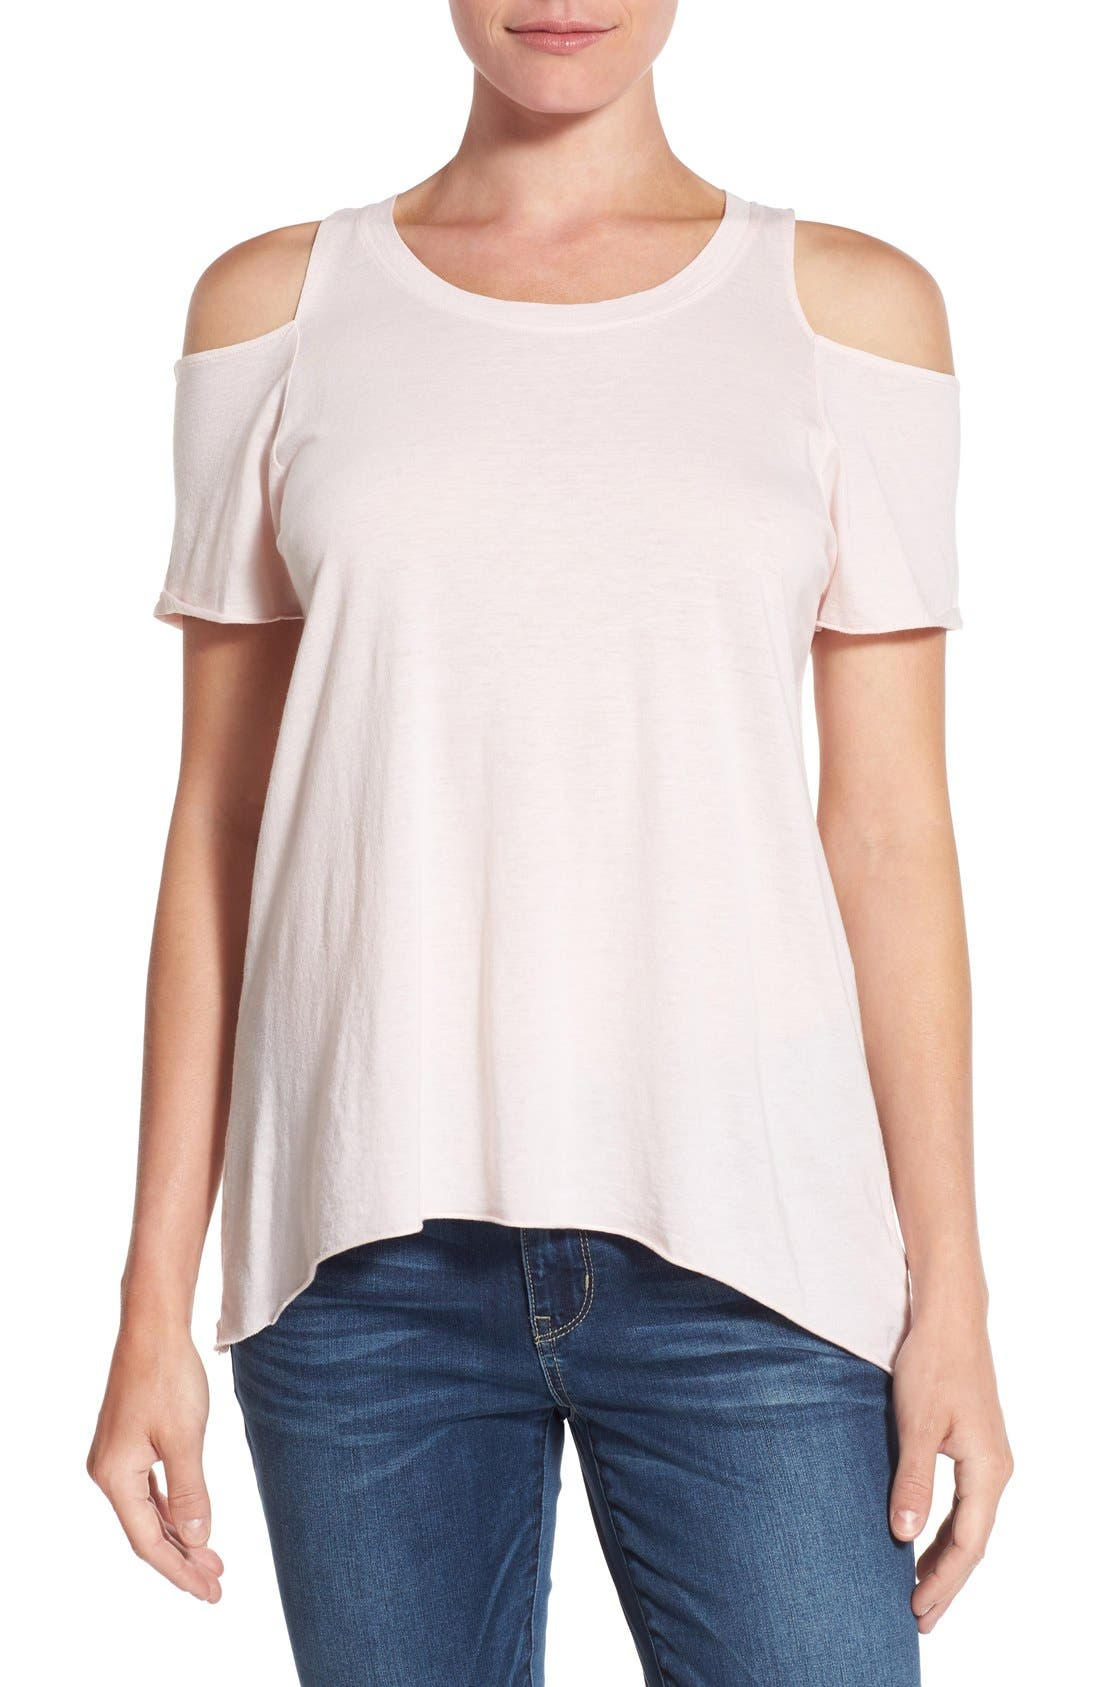 Alternate Image 1 Selected - LAmade Cold Shoulder Short Sleeve Tee